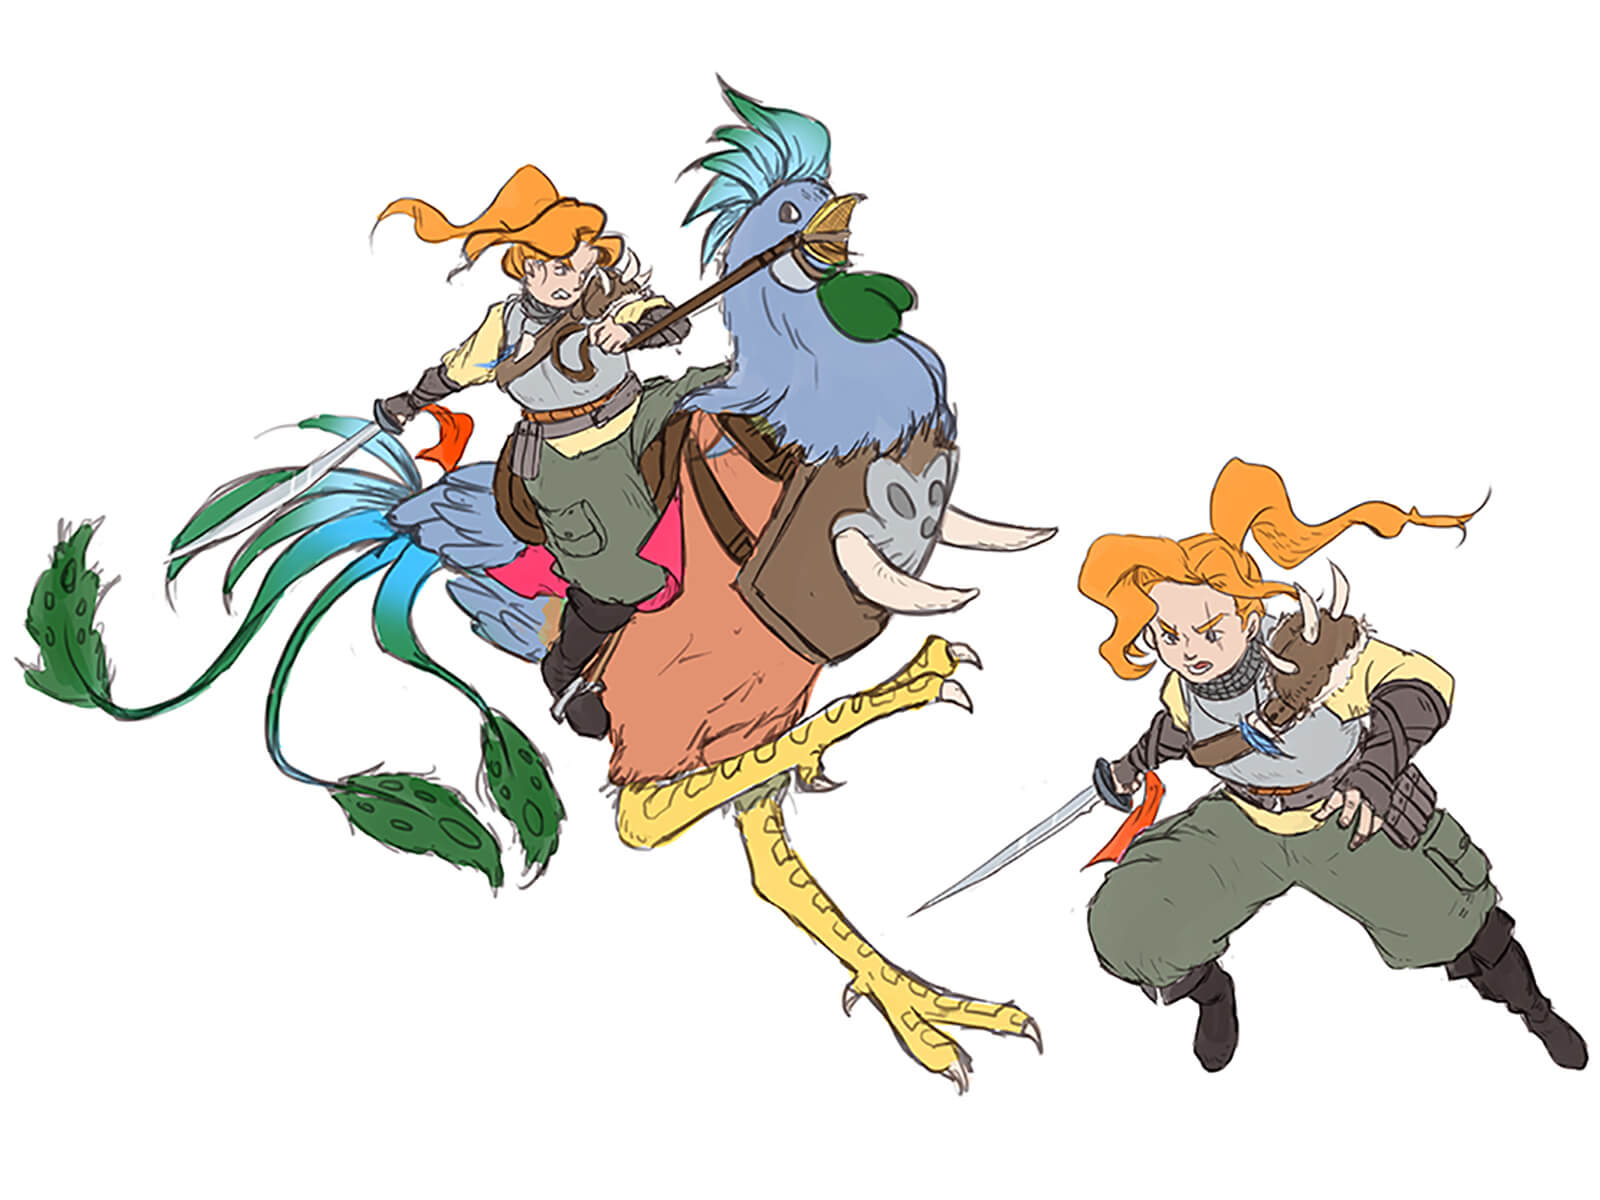 Sketches of an orange-haired warrior brandishing a long, swept sword in various poses, including riding a rooster-like mount.